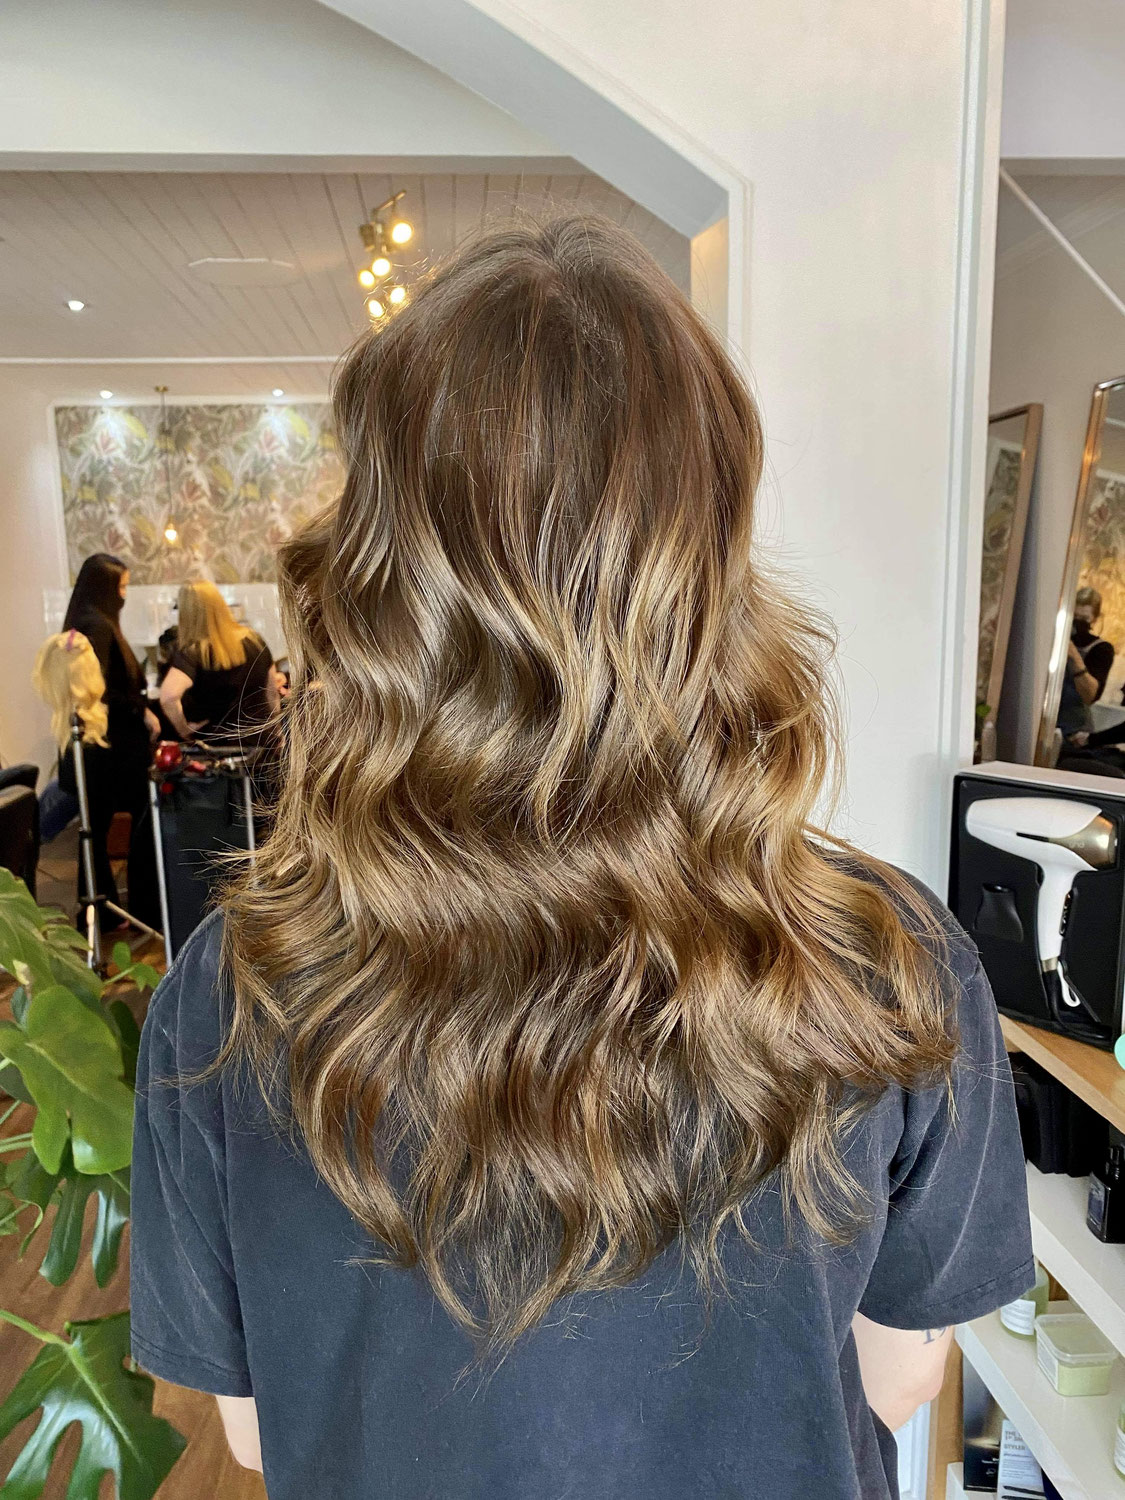 5 Ways You Might Be Damaging Your Hair & What To Do Next